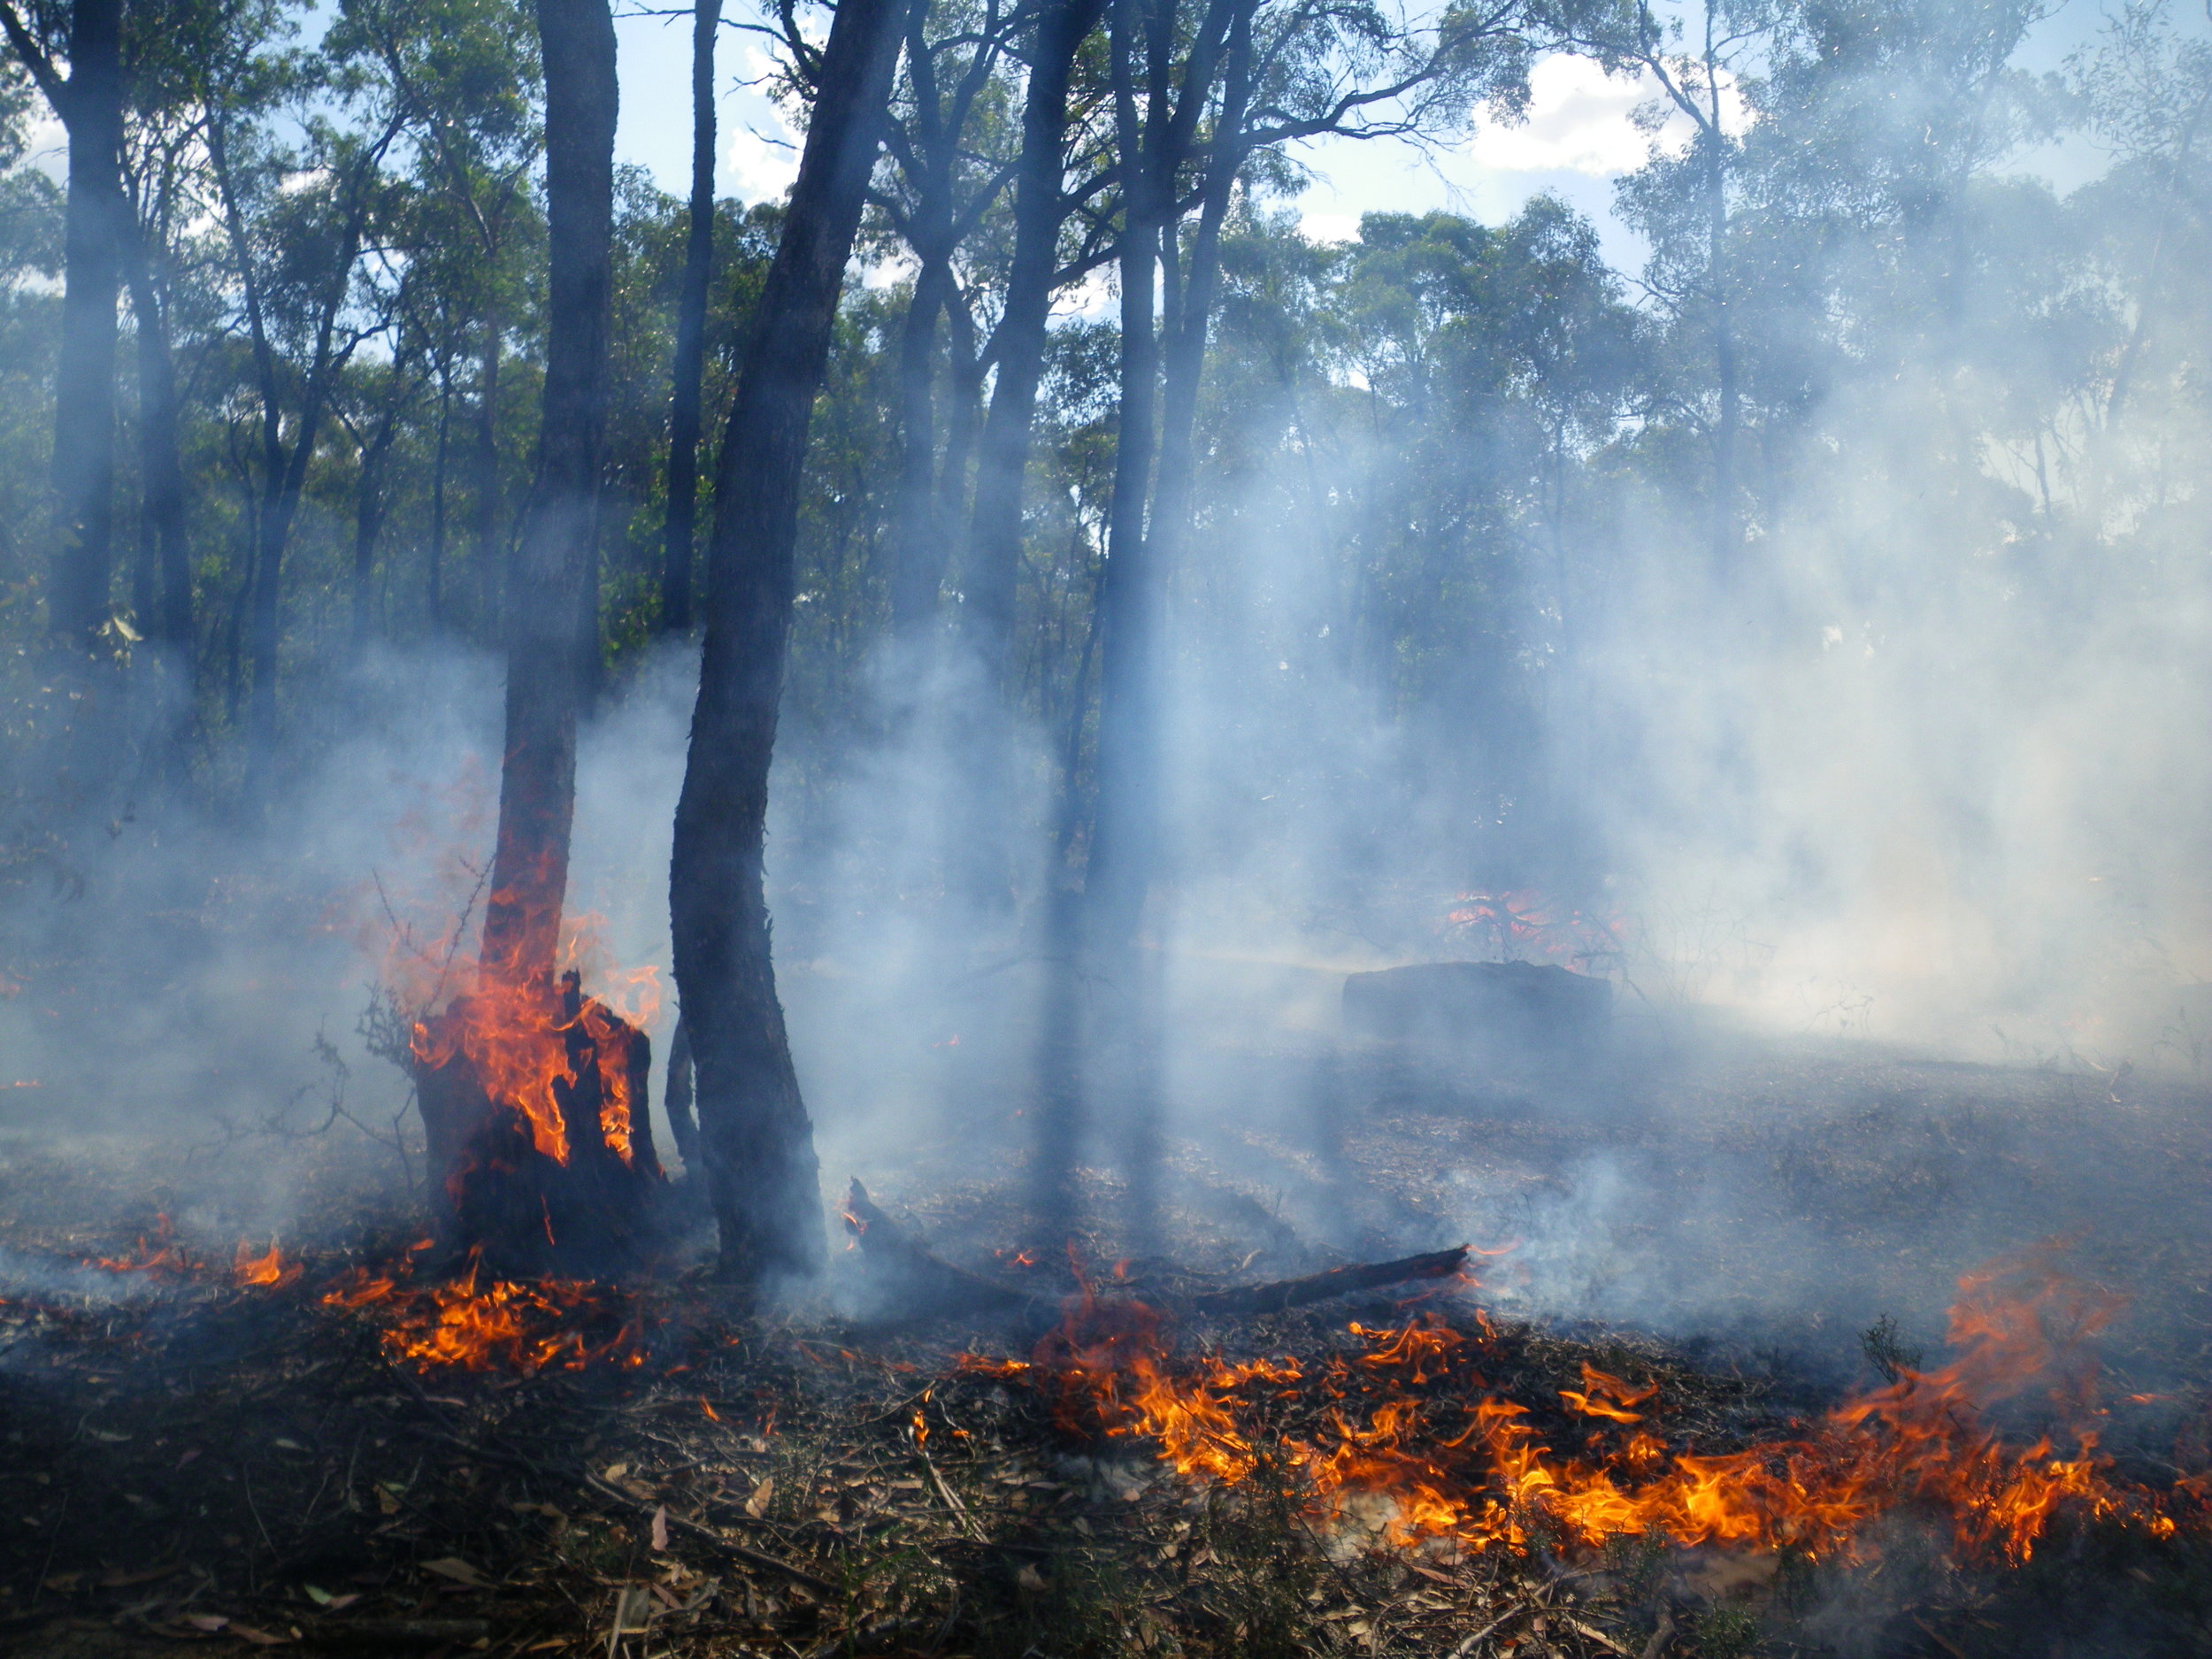 Fire can more easily burn a dead and decaying stump than a live, bark-covered tree. Trees that have resprouted from the base of a cut stump are often more susceptible to fire than free-standing trees because they are readily burnt out at the base. Image: Rowan Mott